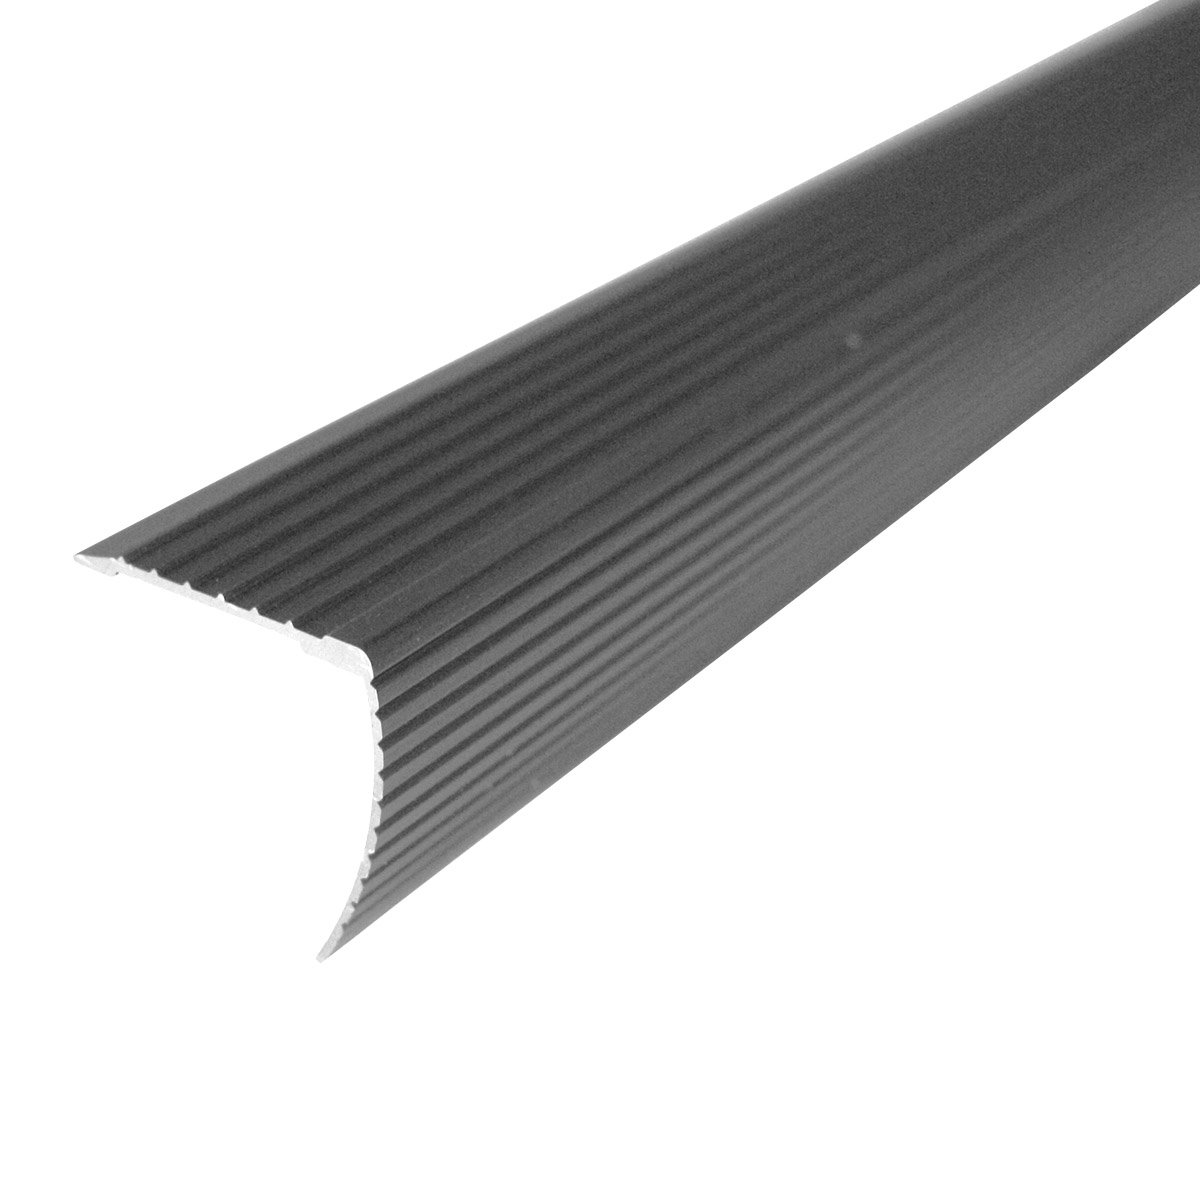 M-D Building Products Cinch Stair Edging (Fluted) 36'' Satin Nickel Satin Nickel